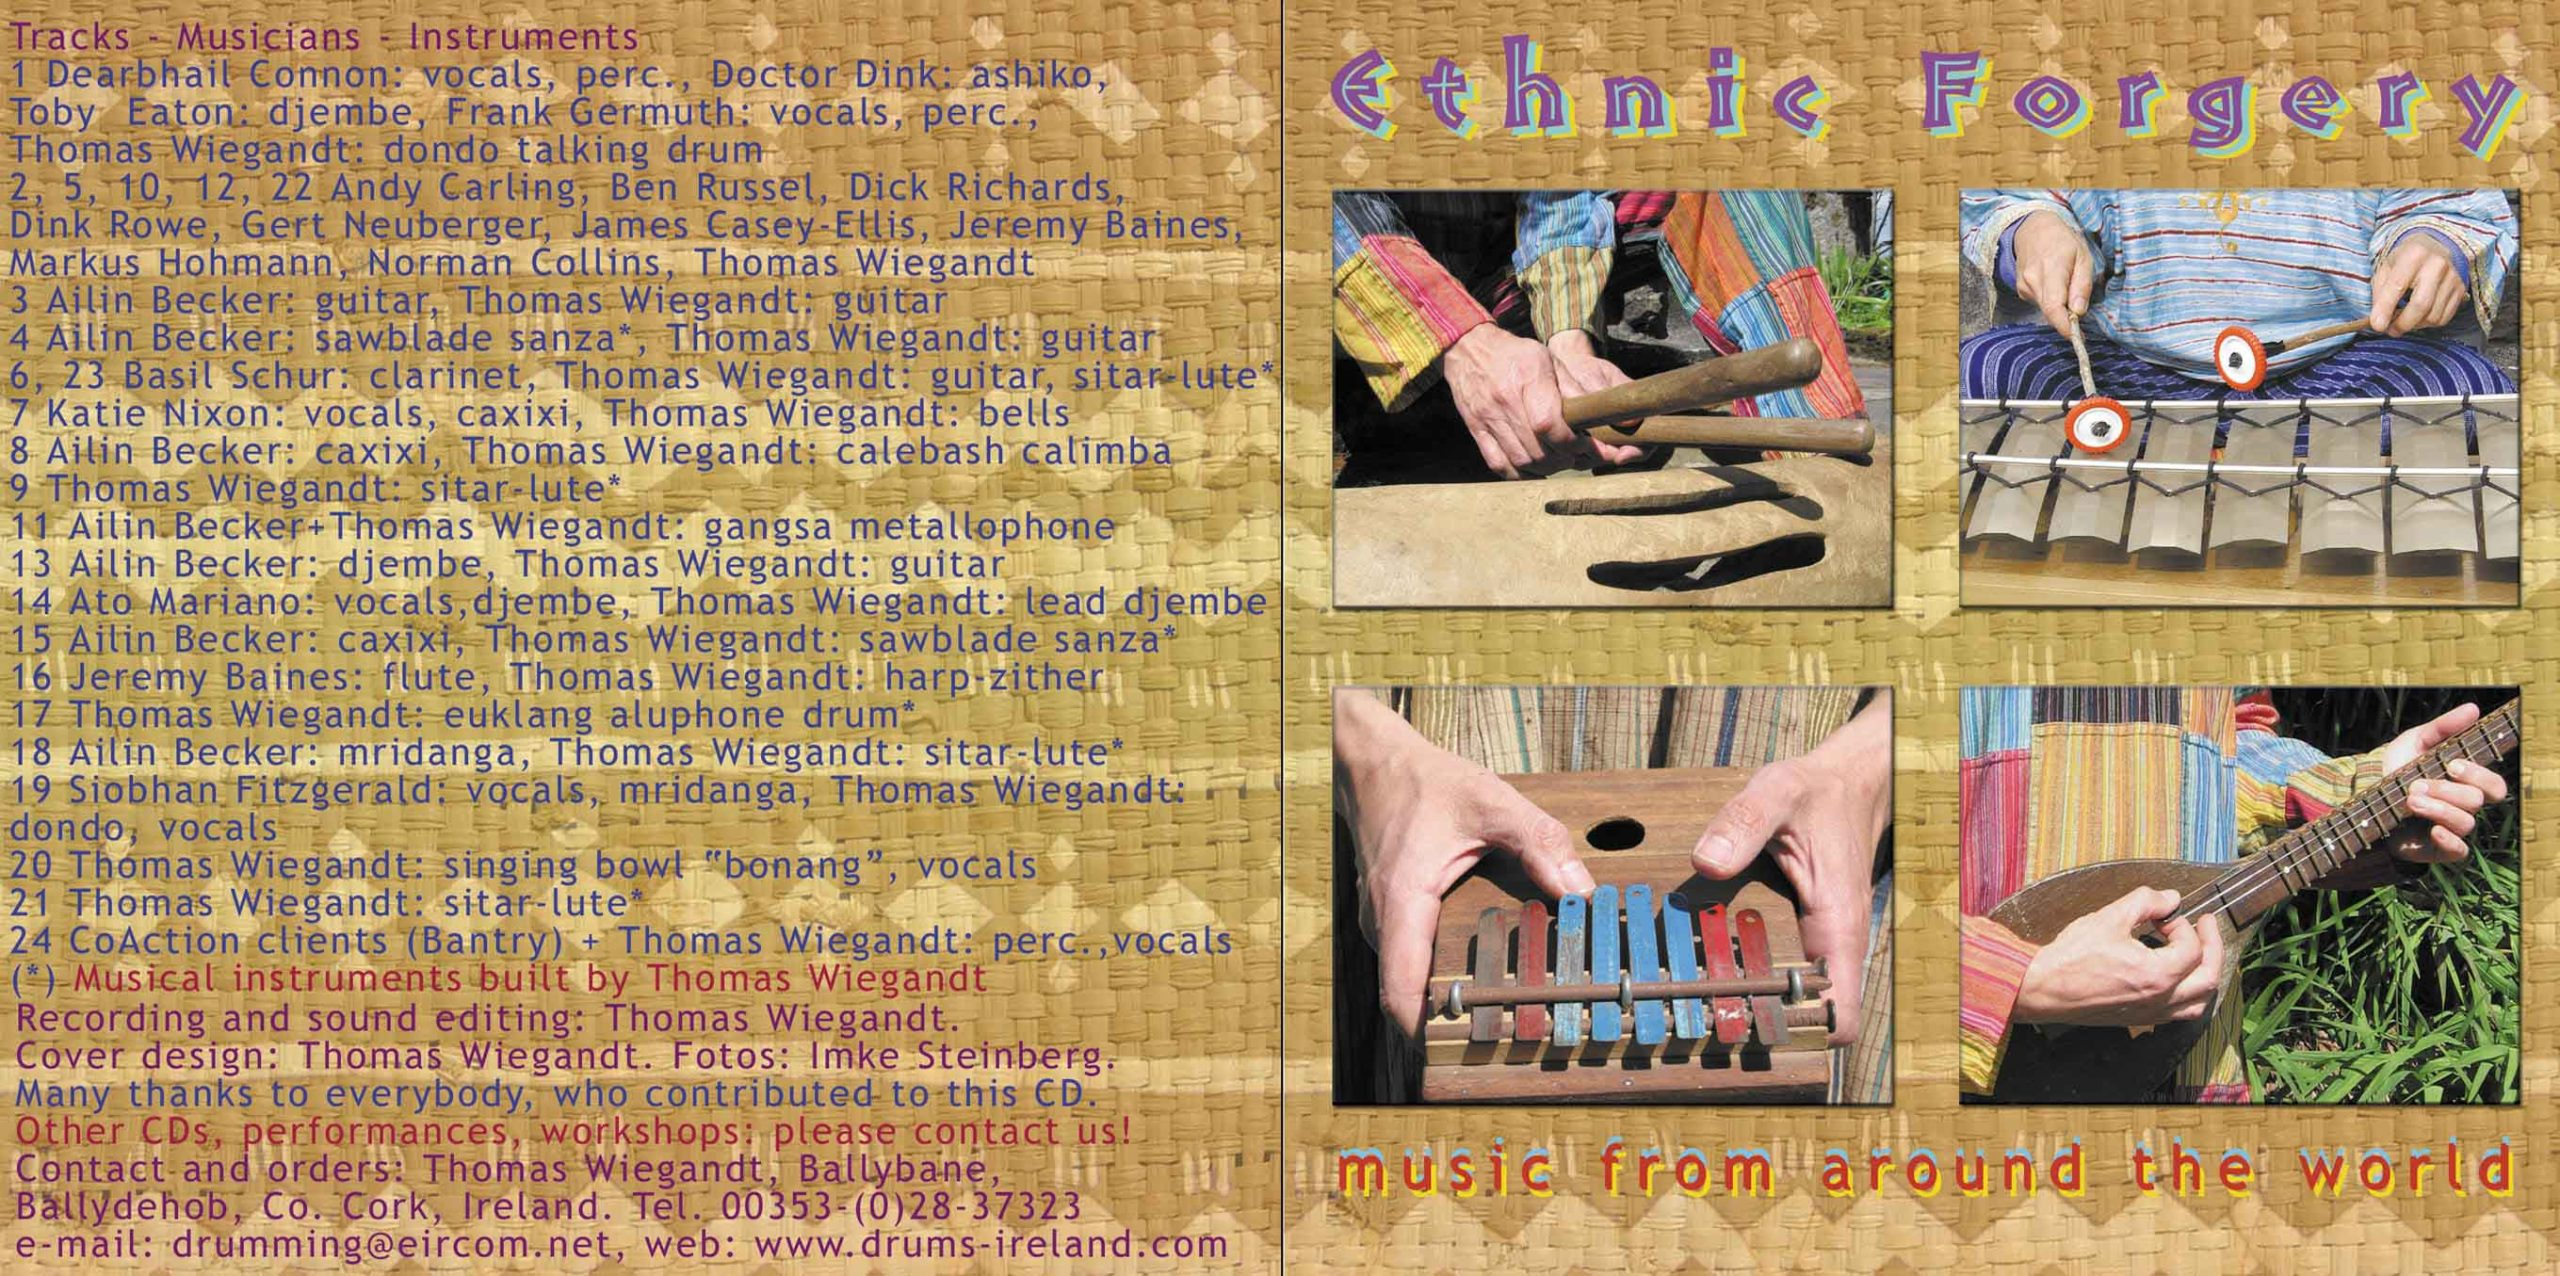 Ethnic Forgery - CD inlay